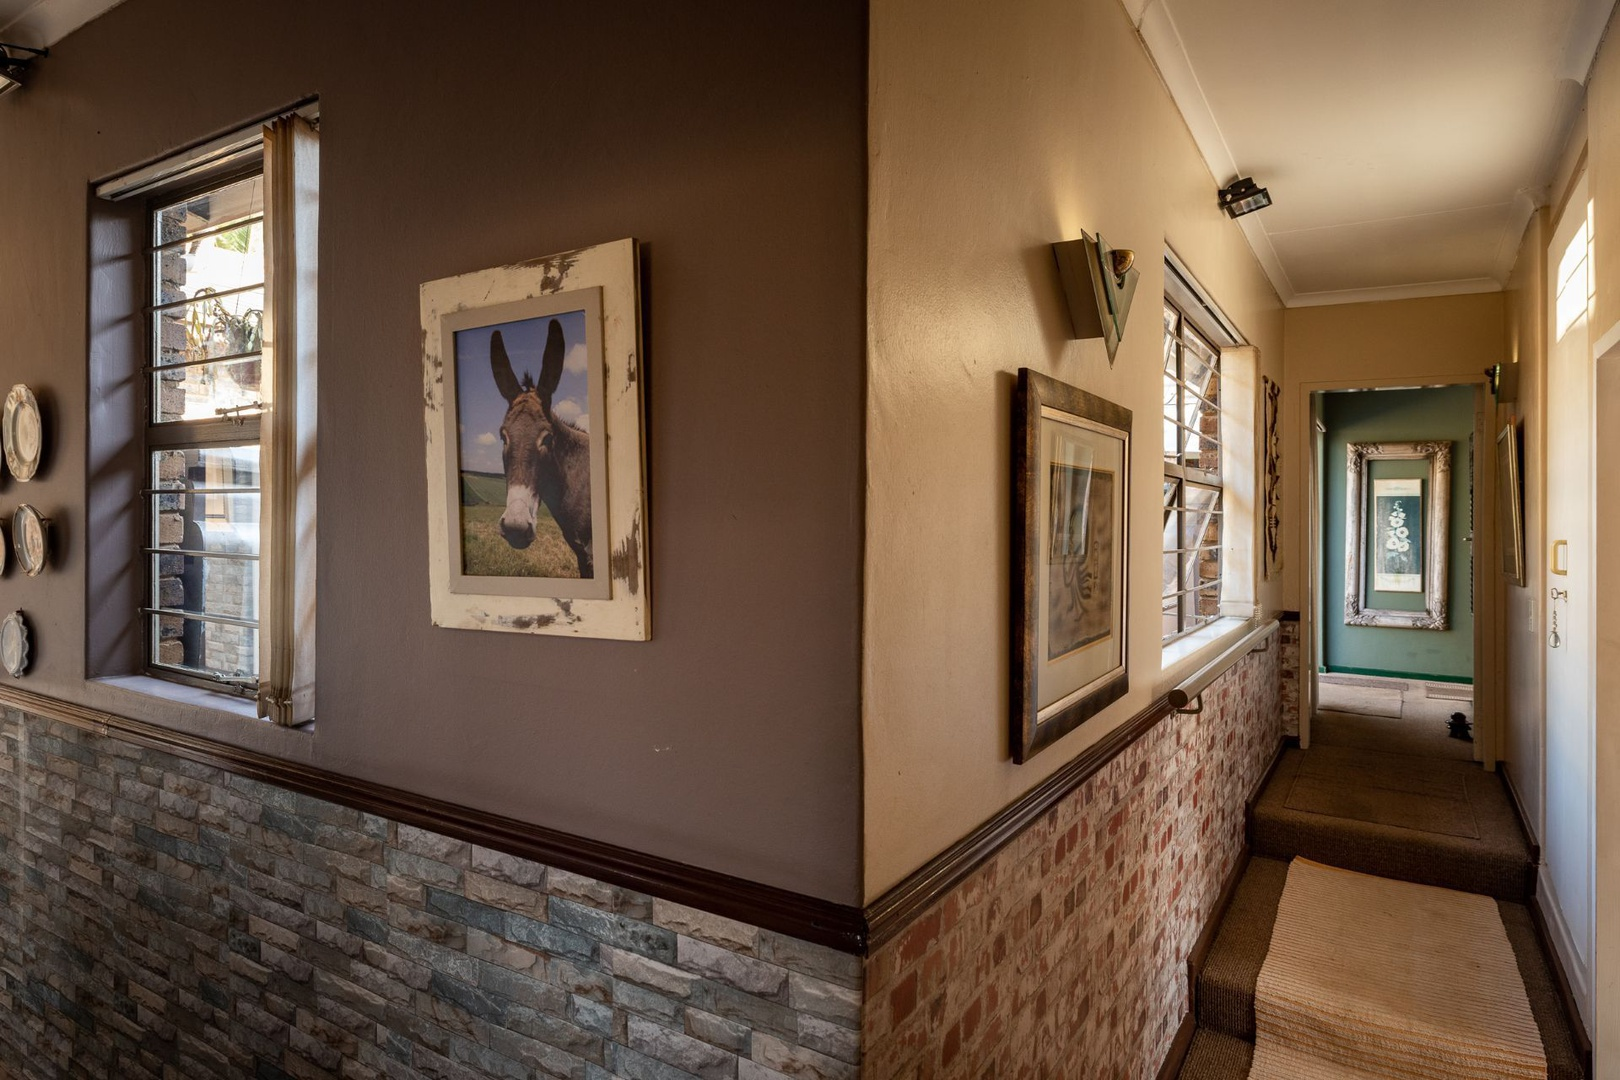 House in Monument Park Ext - Why not your own art gallary in the light airy hall?